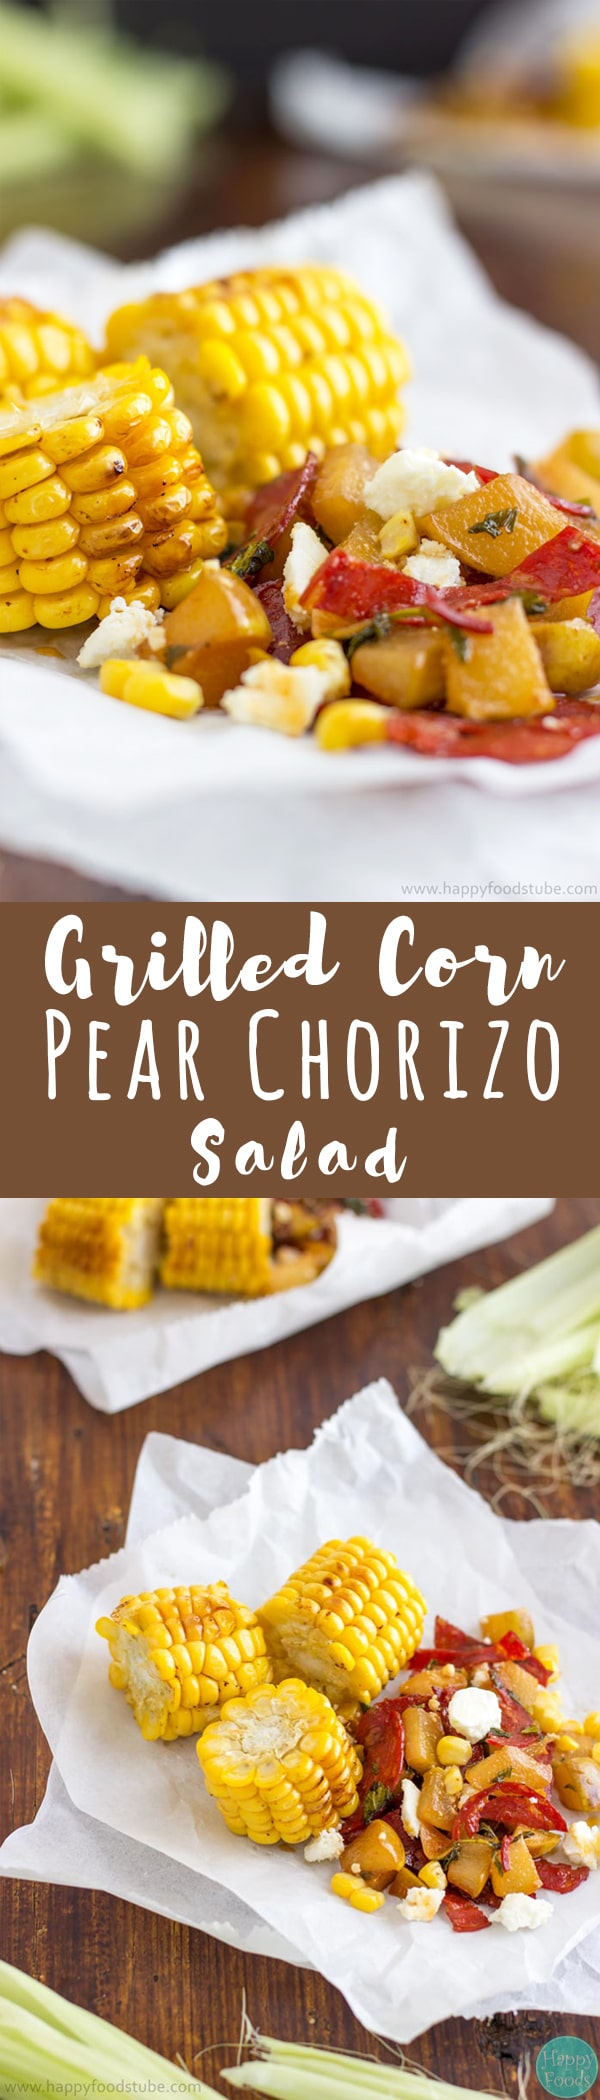 This Grilled Corn with Pear Chorizo Salad is a yummy appetizer recipe! Simple ingredients: Sweet Corn, Chorizo, Feta Cheese, Pears, Garlic and Parsley   happyfoodstube.com